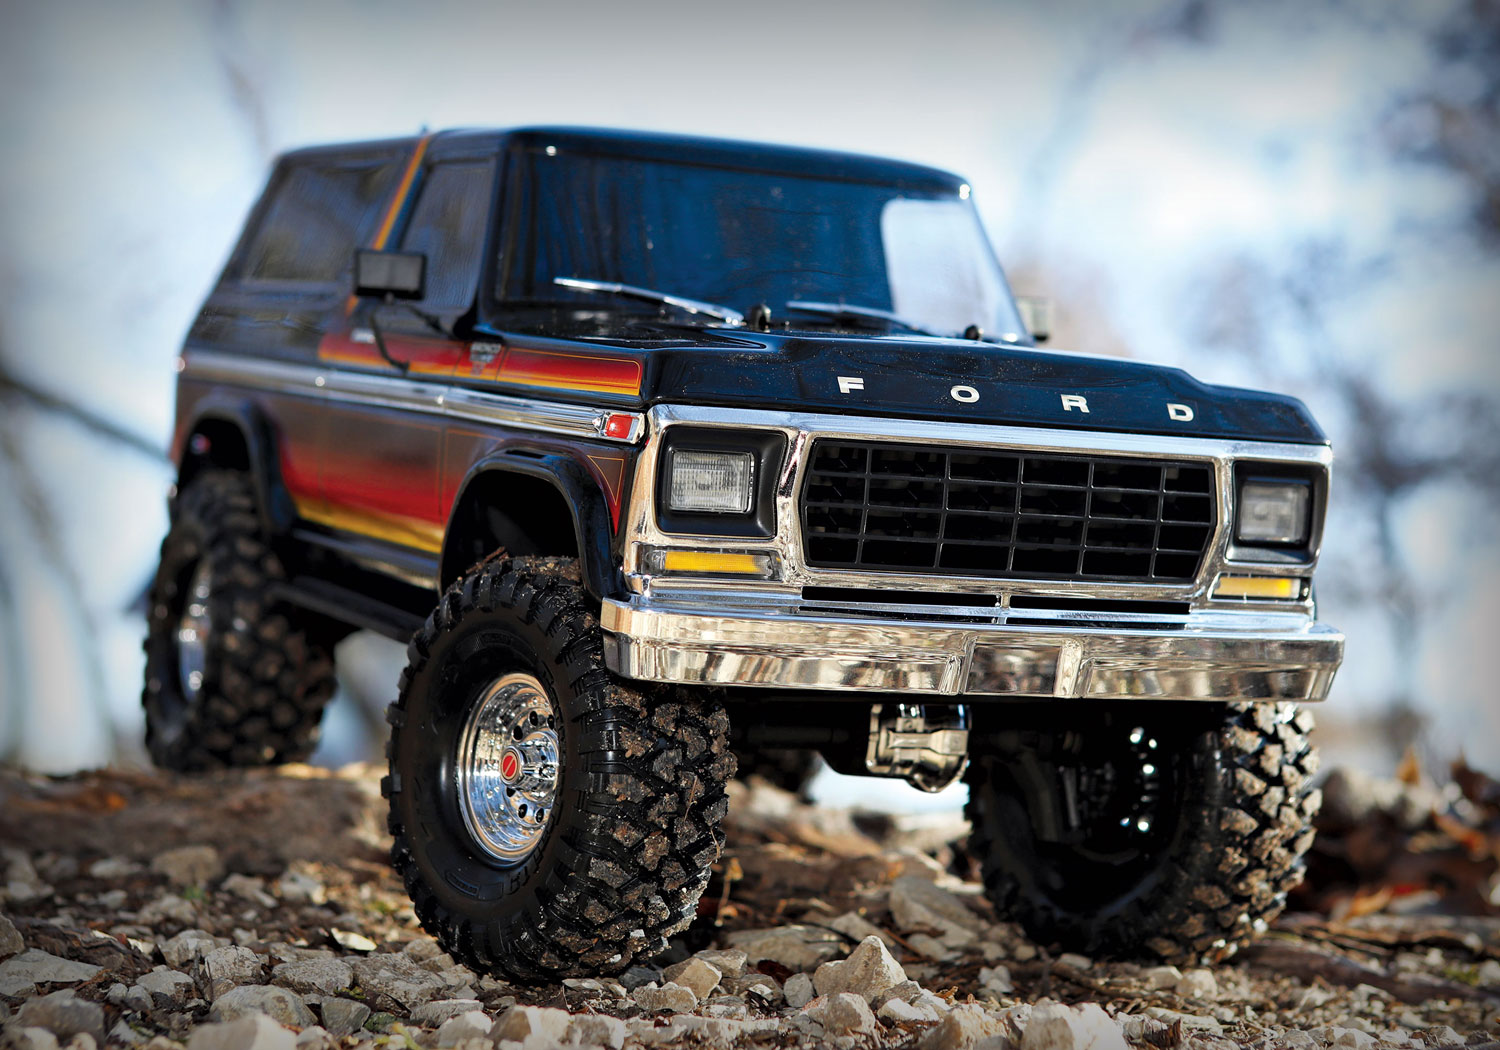 Traxxas TRX-4 Bronco | Scale and Trail Crawler | 4x4 RC Truck